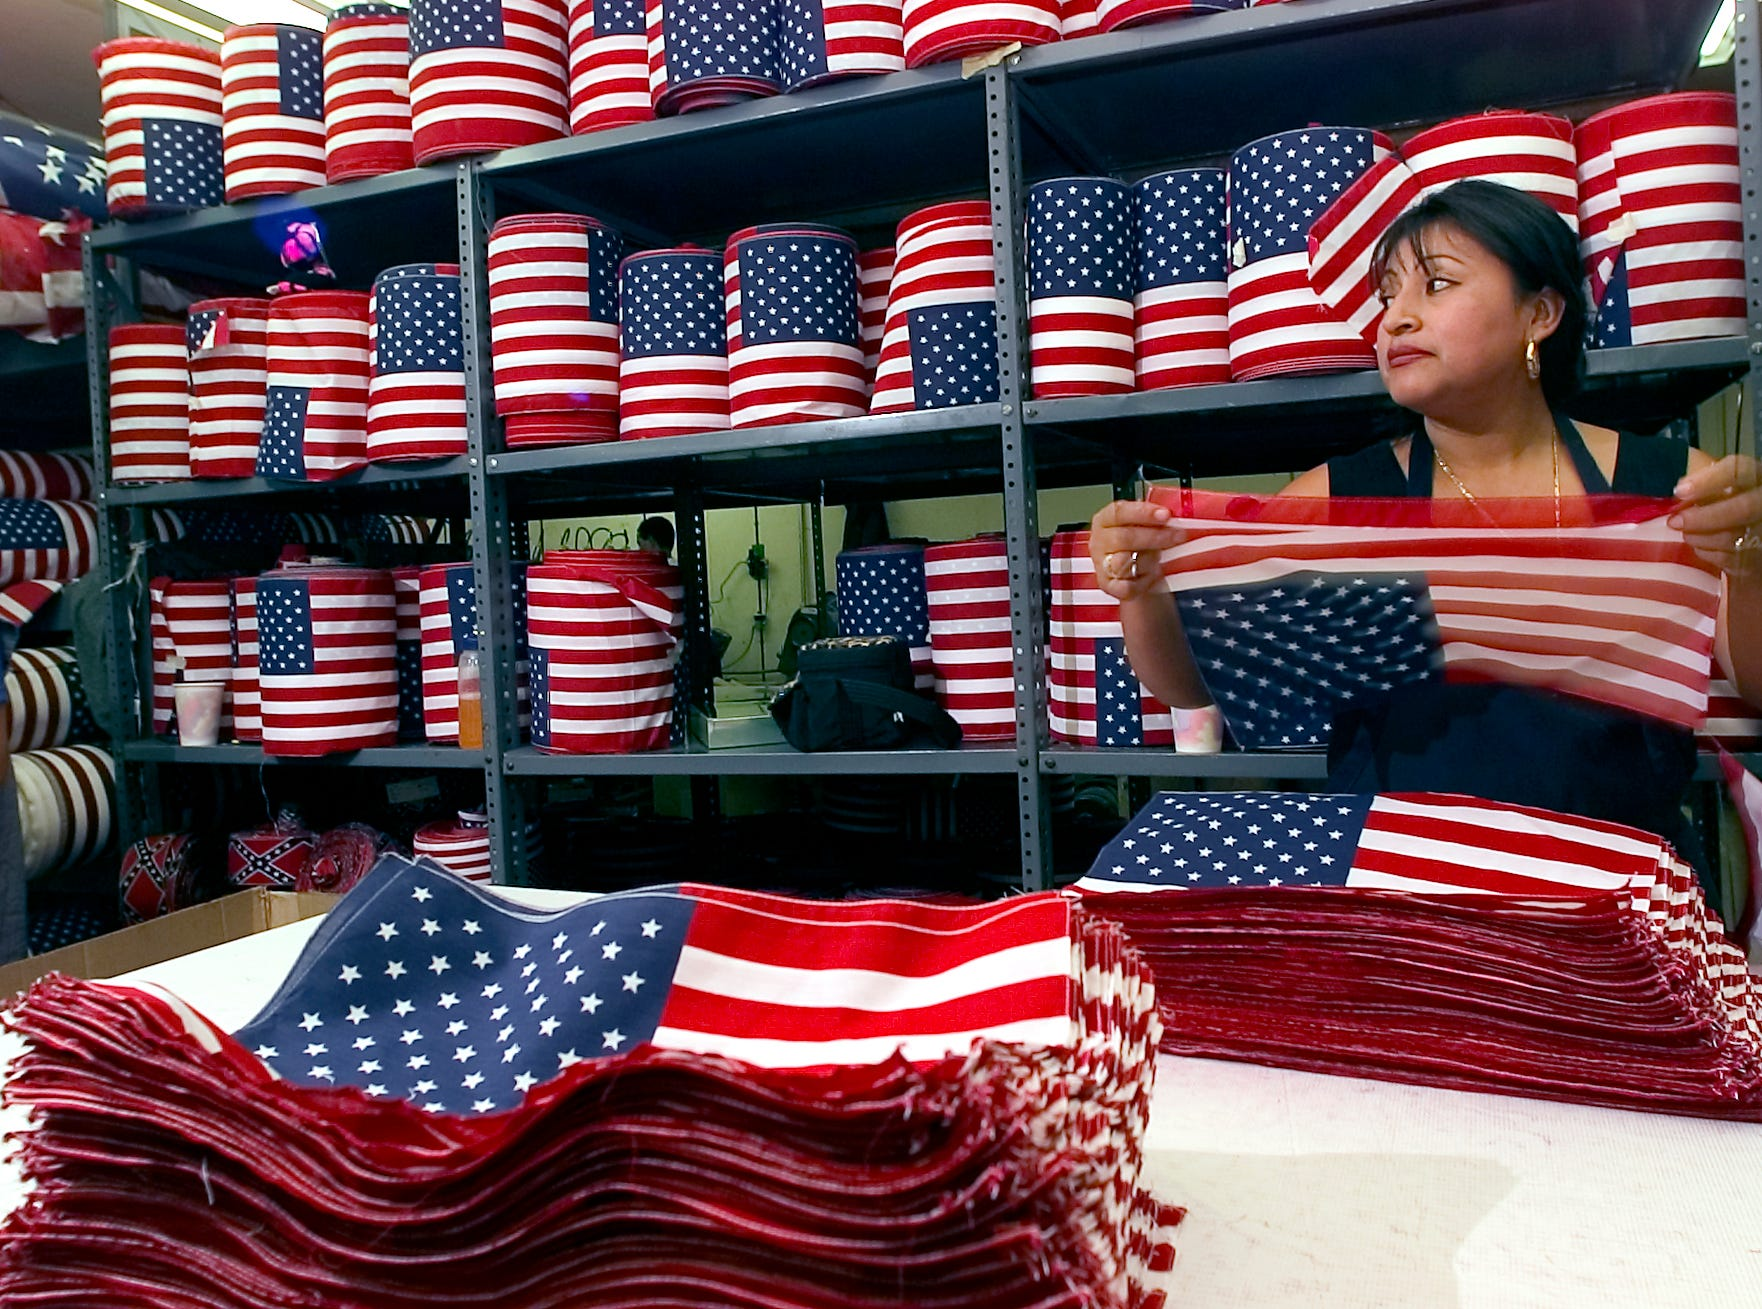 On September 12, 2001, a worker stacks American Flags at Metro Flag, one of the worldÕs largest manufacturers of hand-held U.S. flags in Dover, NJ was overwhelmed with high-volume orders from across the USA after the World Trade Center attacks.